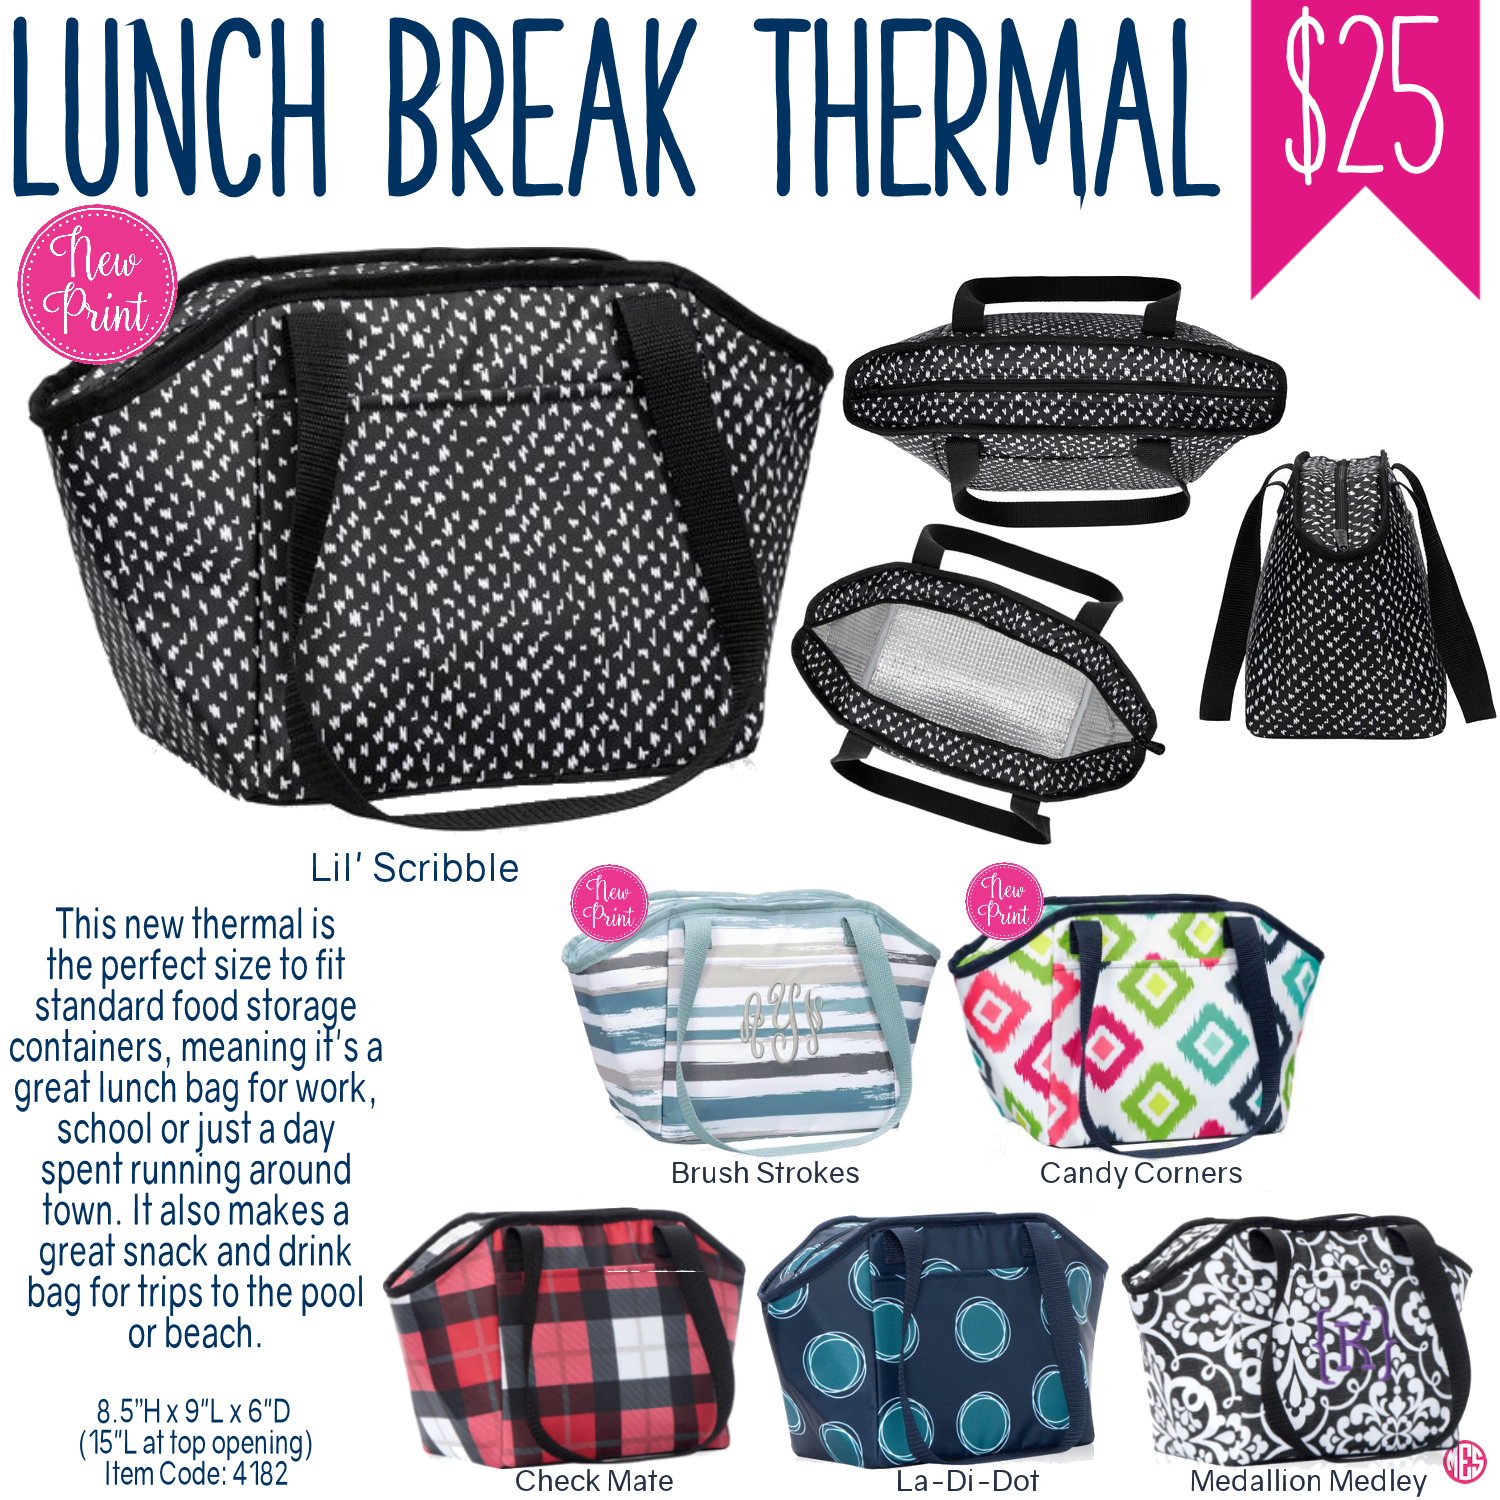 4918444daf85 Thirty-One Lunch Break Thermal - Spring/Summer 2017 | Thirty one ...